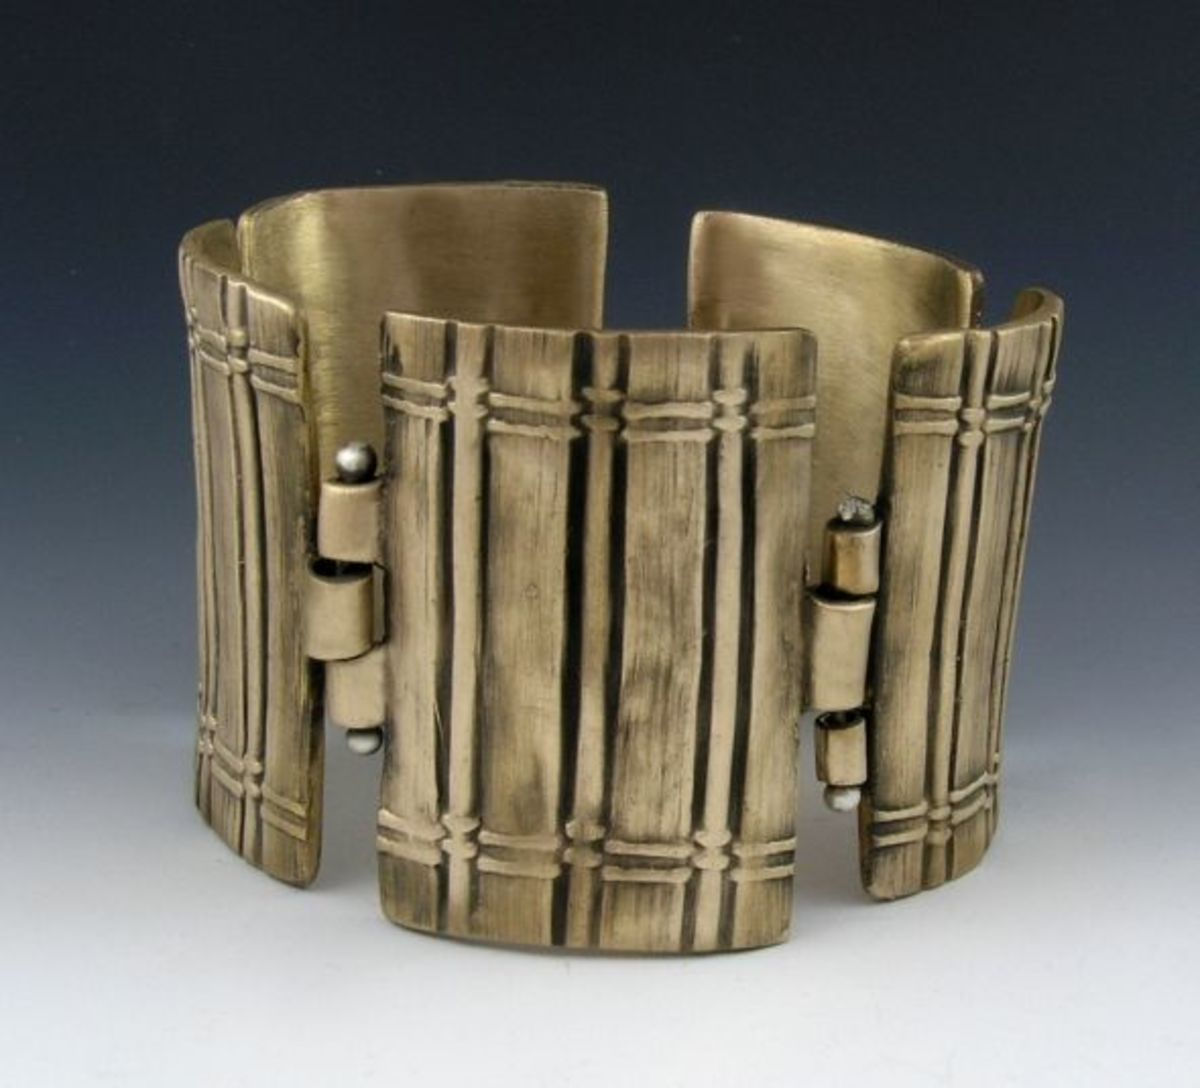 Hinged Fence Bracelet